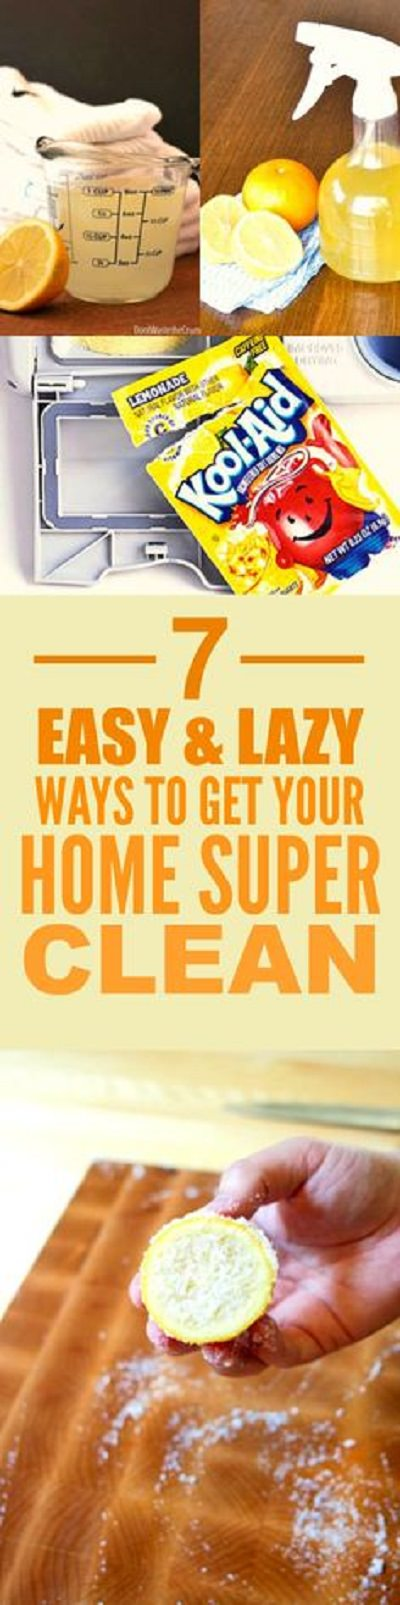 Dirty floor, cluttered bedroom, unorganized kitchen-- Sounds too much? Well, you can do cleaning quickly and better if you apply these hacks!